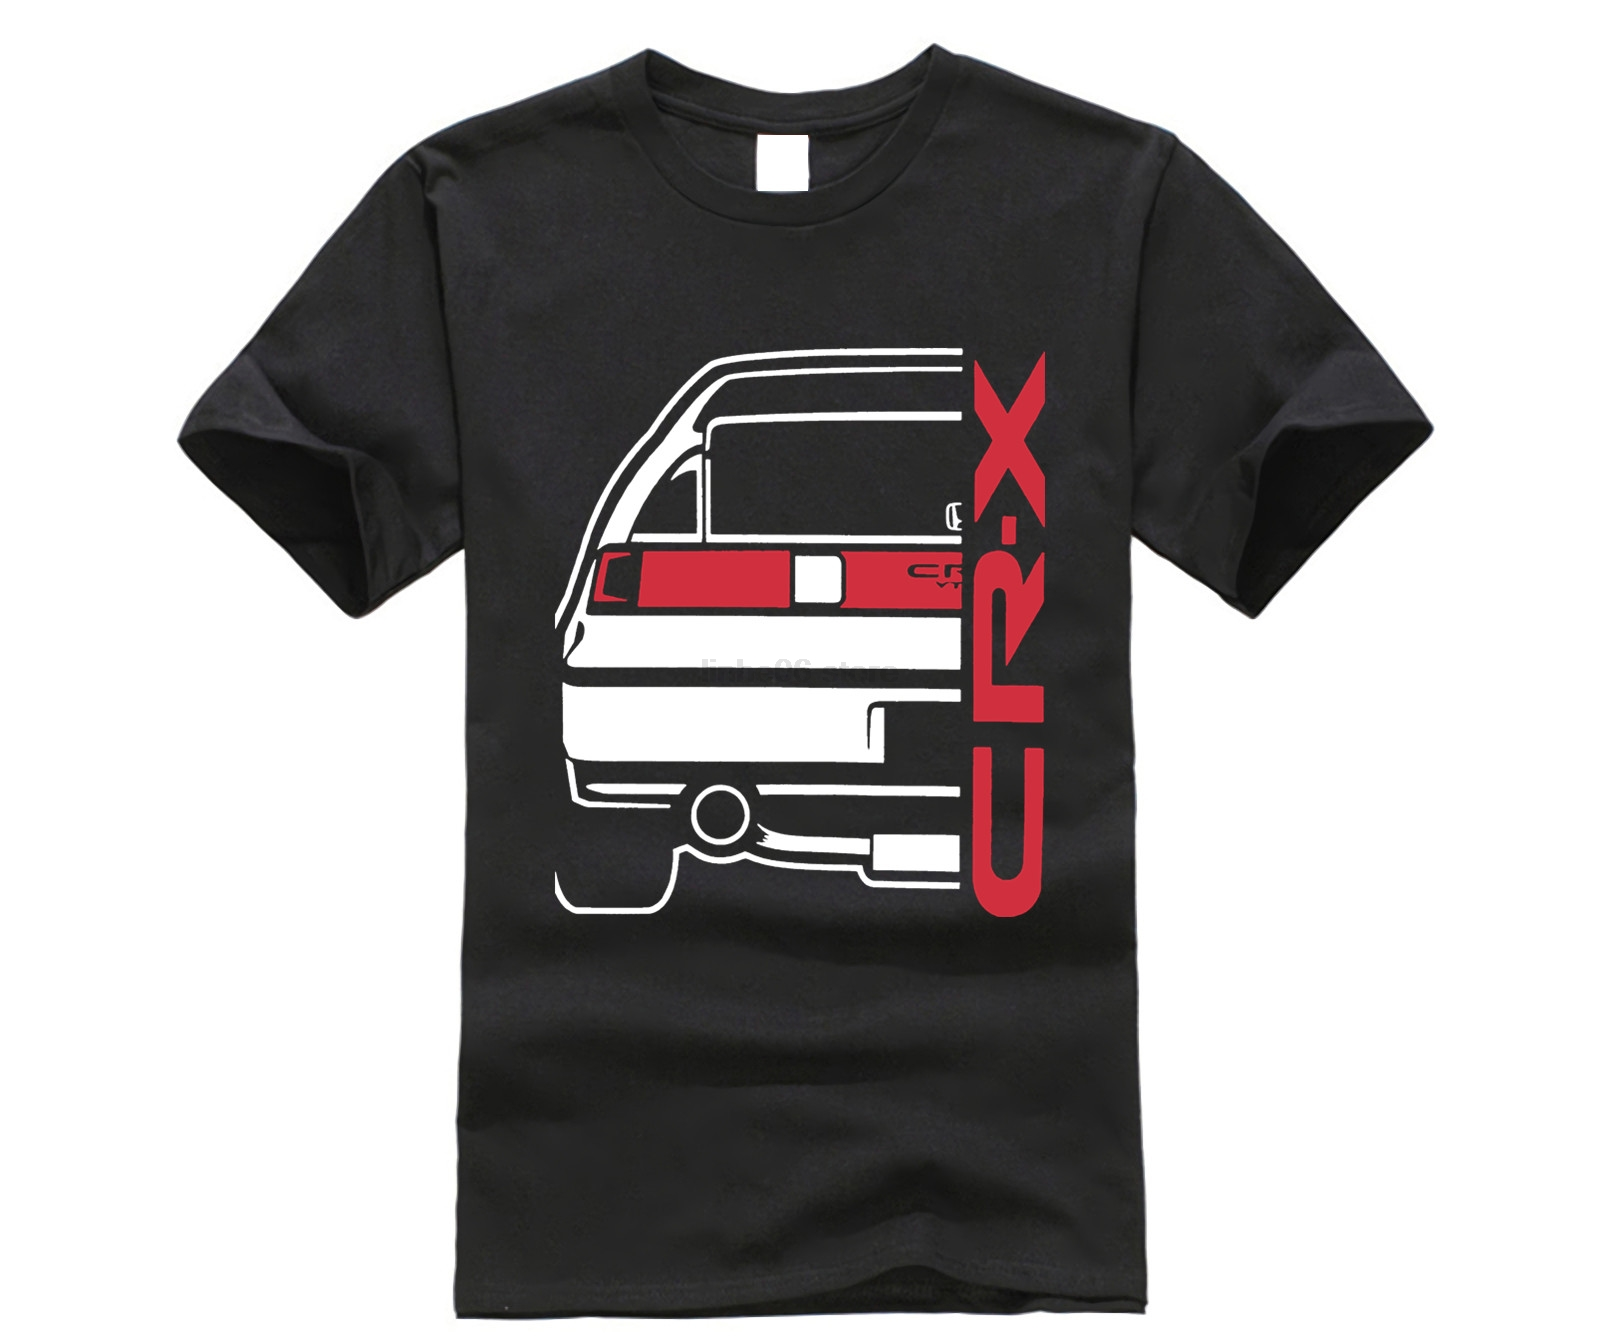 2019 Hot Sale 100% Cotton Classic Japanese Car Fans CRX VTEC T-SHIRT (Type 1) Tee Shirt